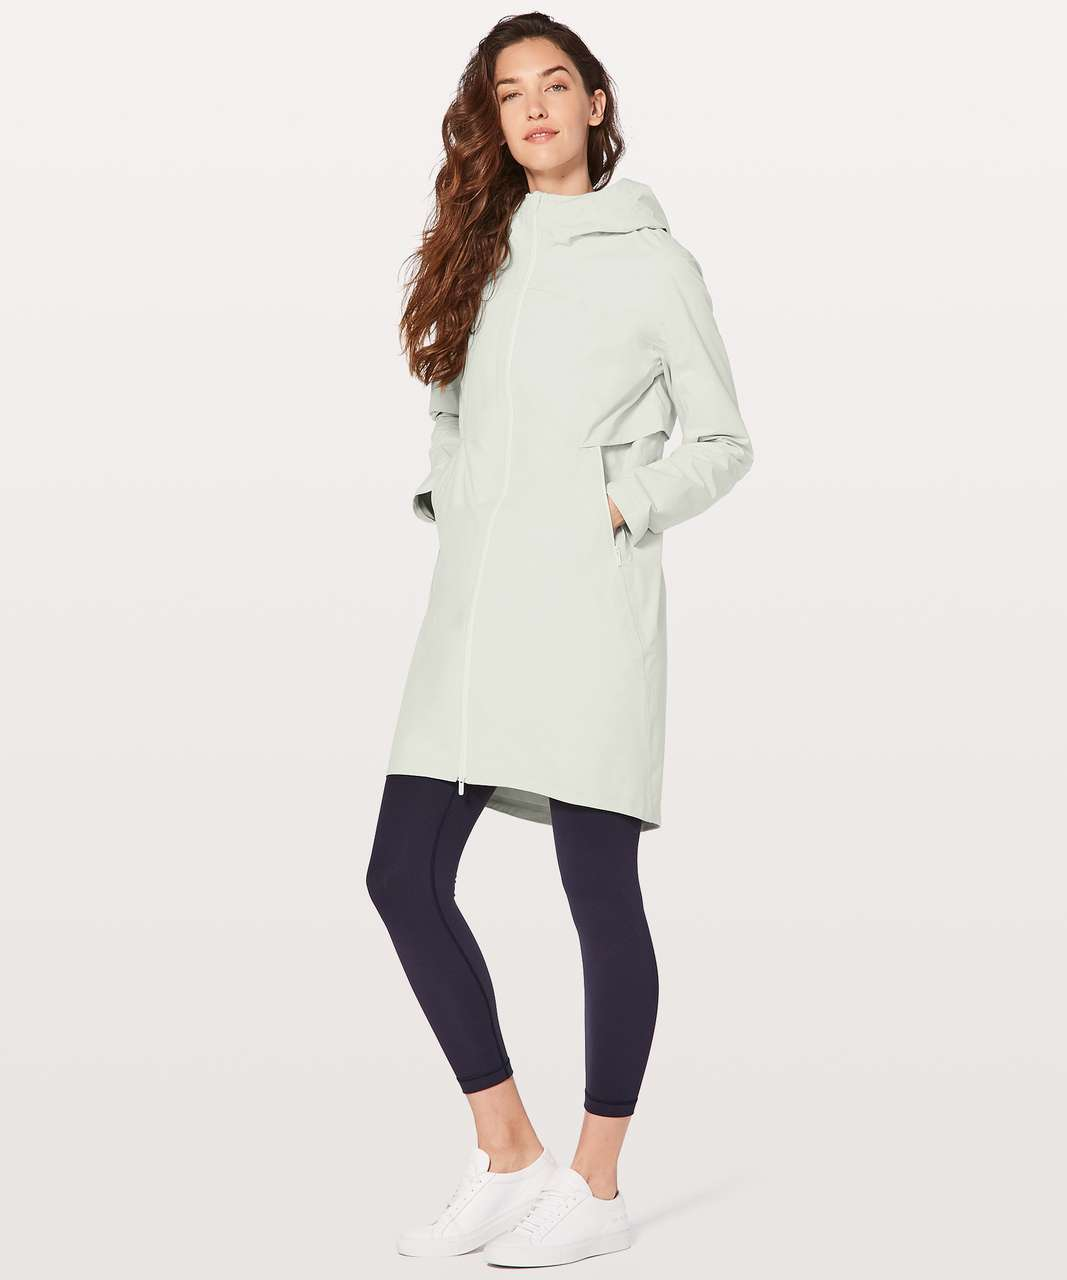 Lululemon Cloud Crush Jacket - Ocean Mist